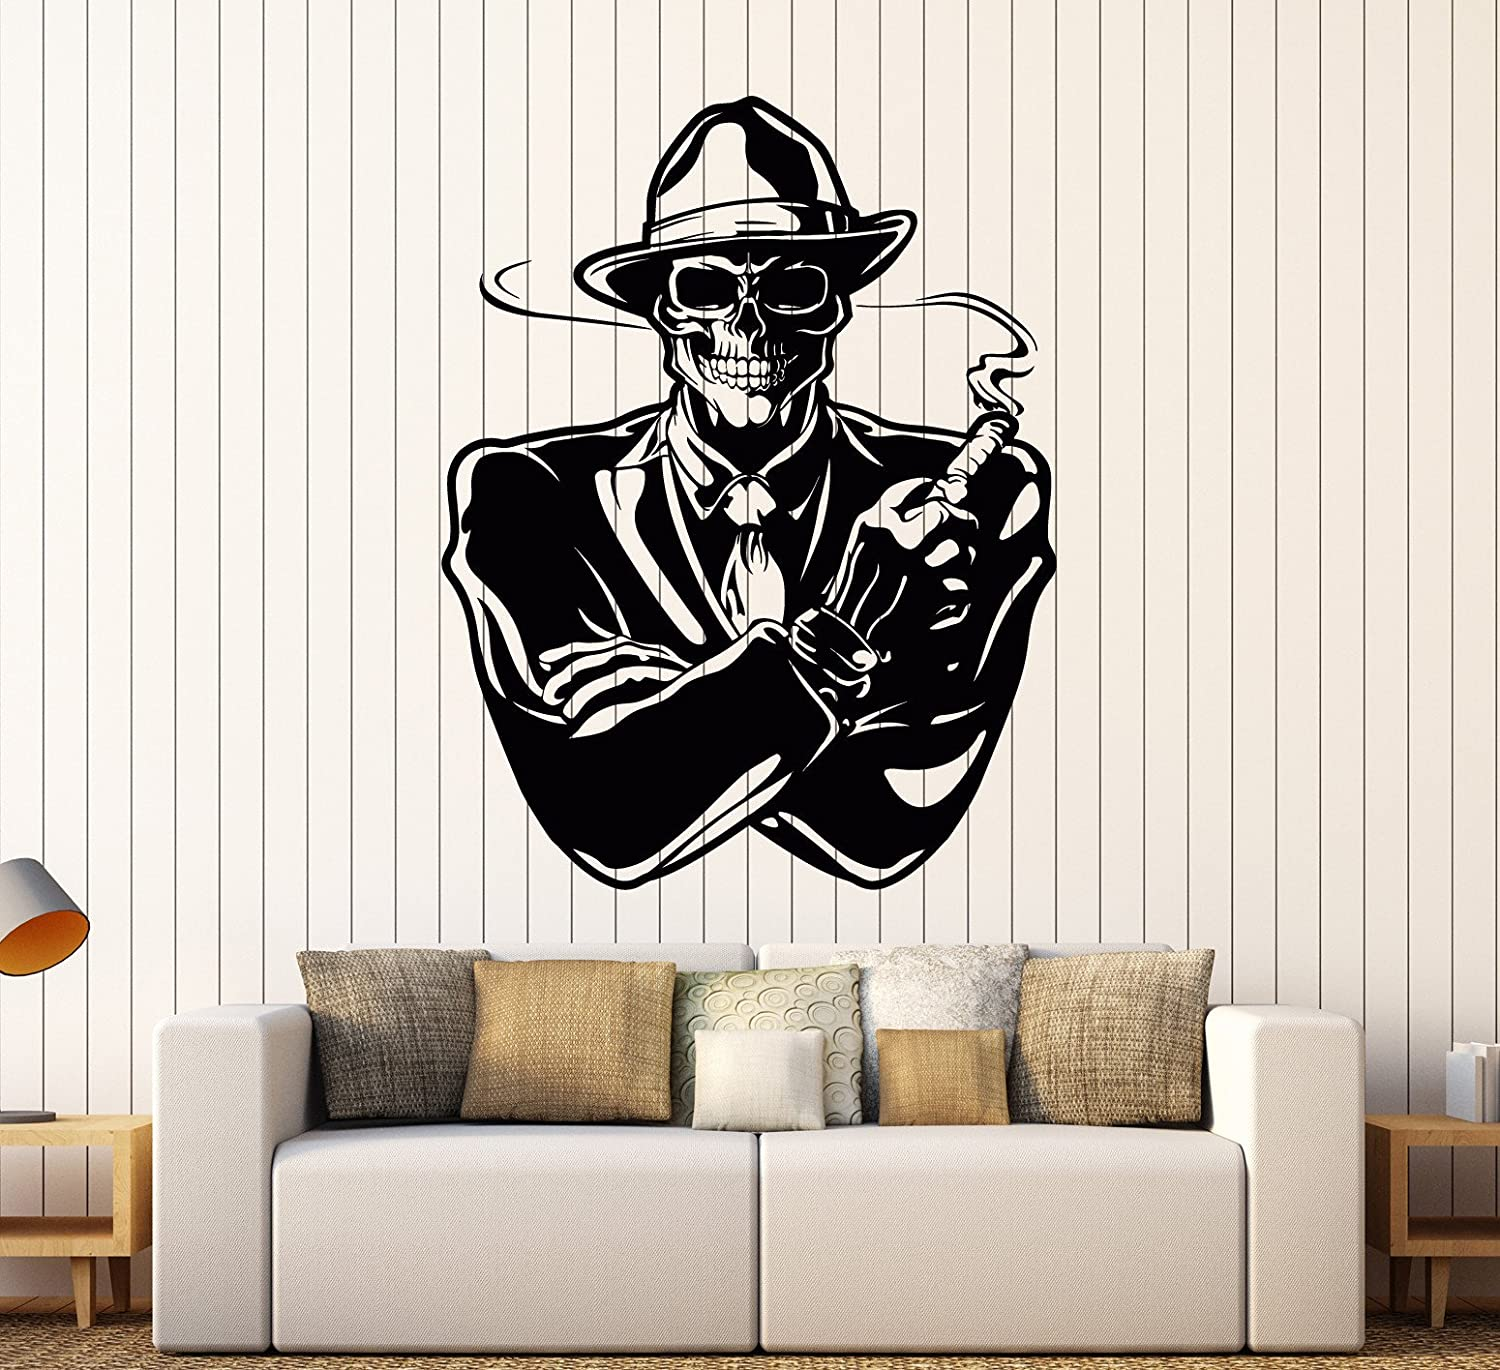 Vinyl Wall Decal Gangster with Cigar Dead Skull Mafia Stickers Large Decor (ig4050) Matte Black